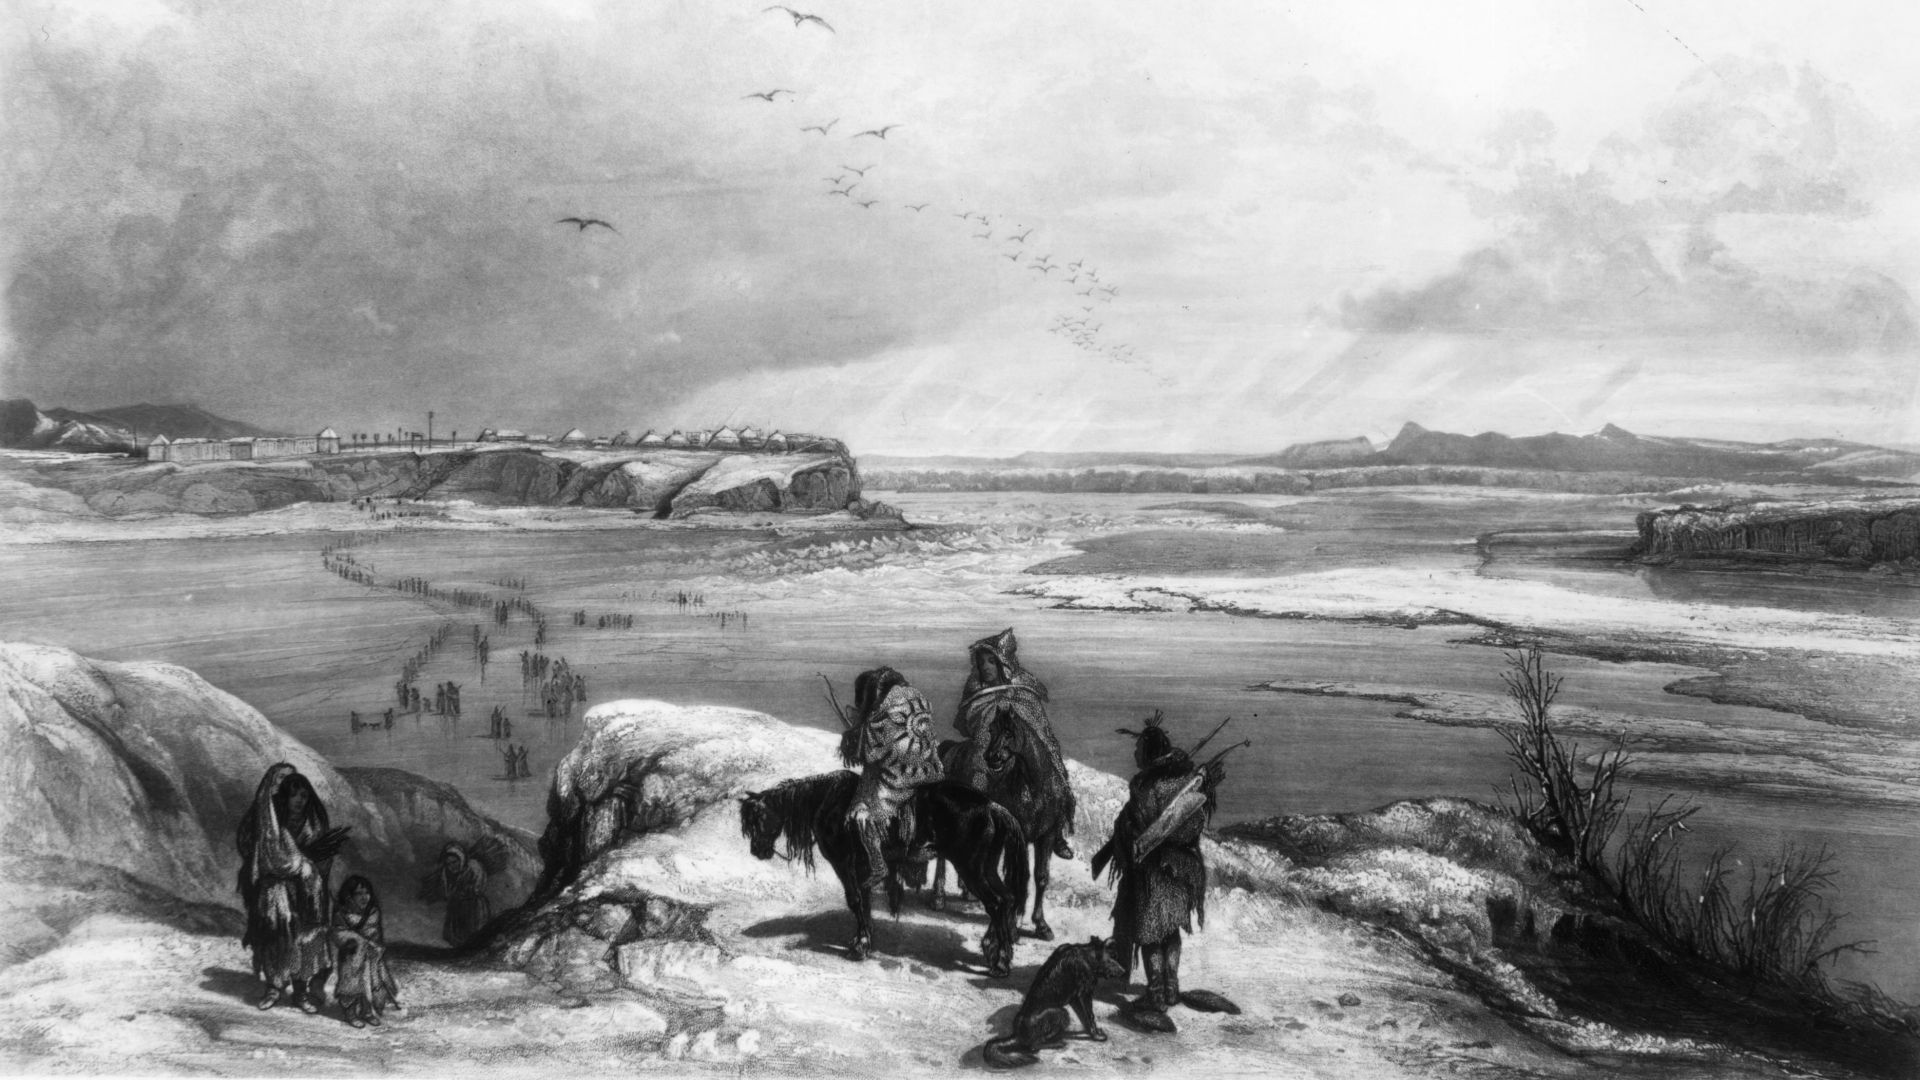 A group of Native Americans gazing across the frozen Missouri River, 1834. (Credit: MPI/Getty Images) lutheran indian ministries native news